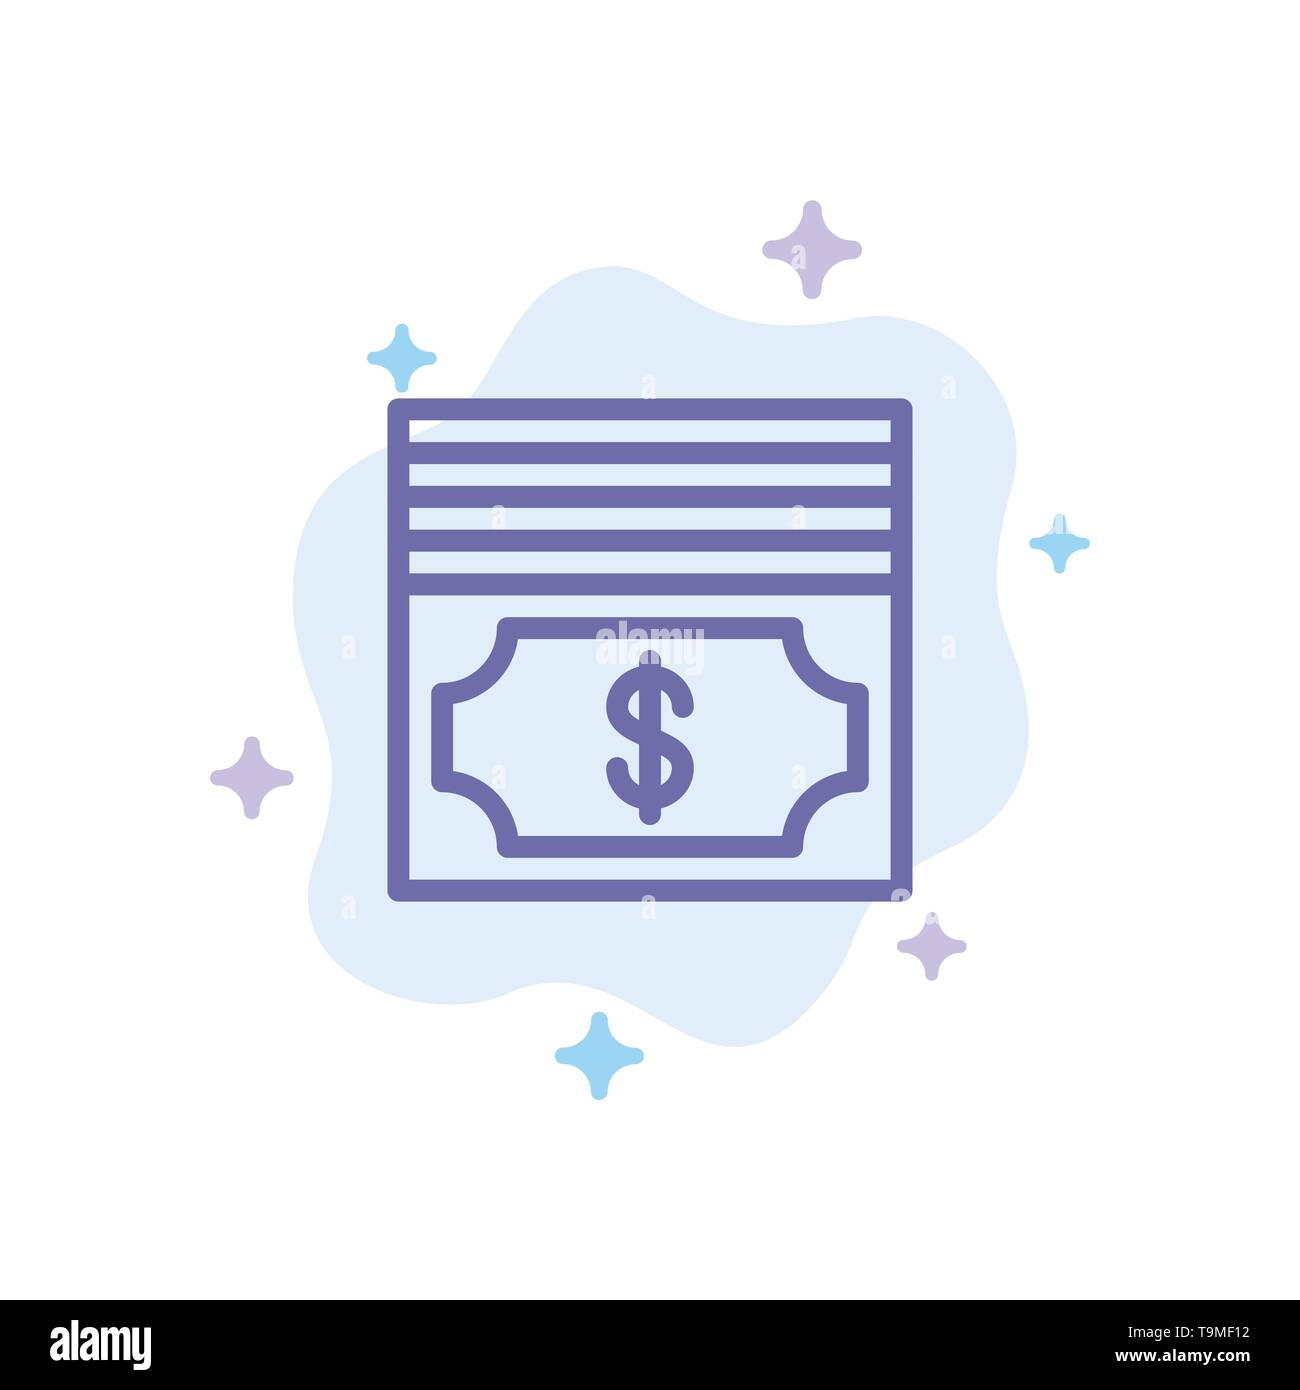 Cash, Dollar, Money Blue Icon on Abstract Cloud Background - Stock Image